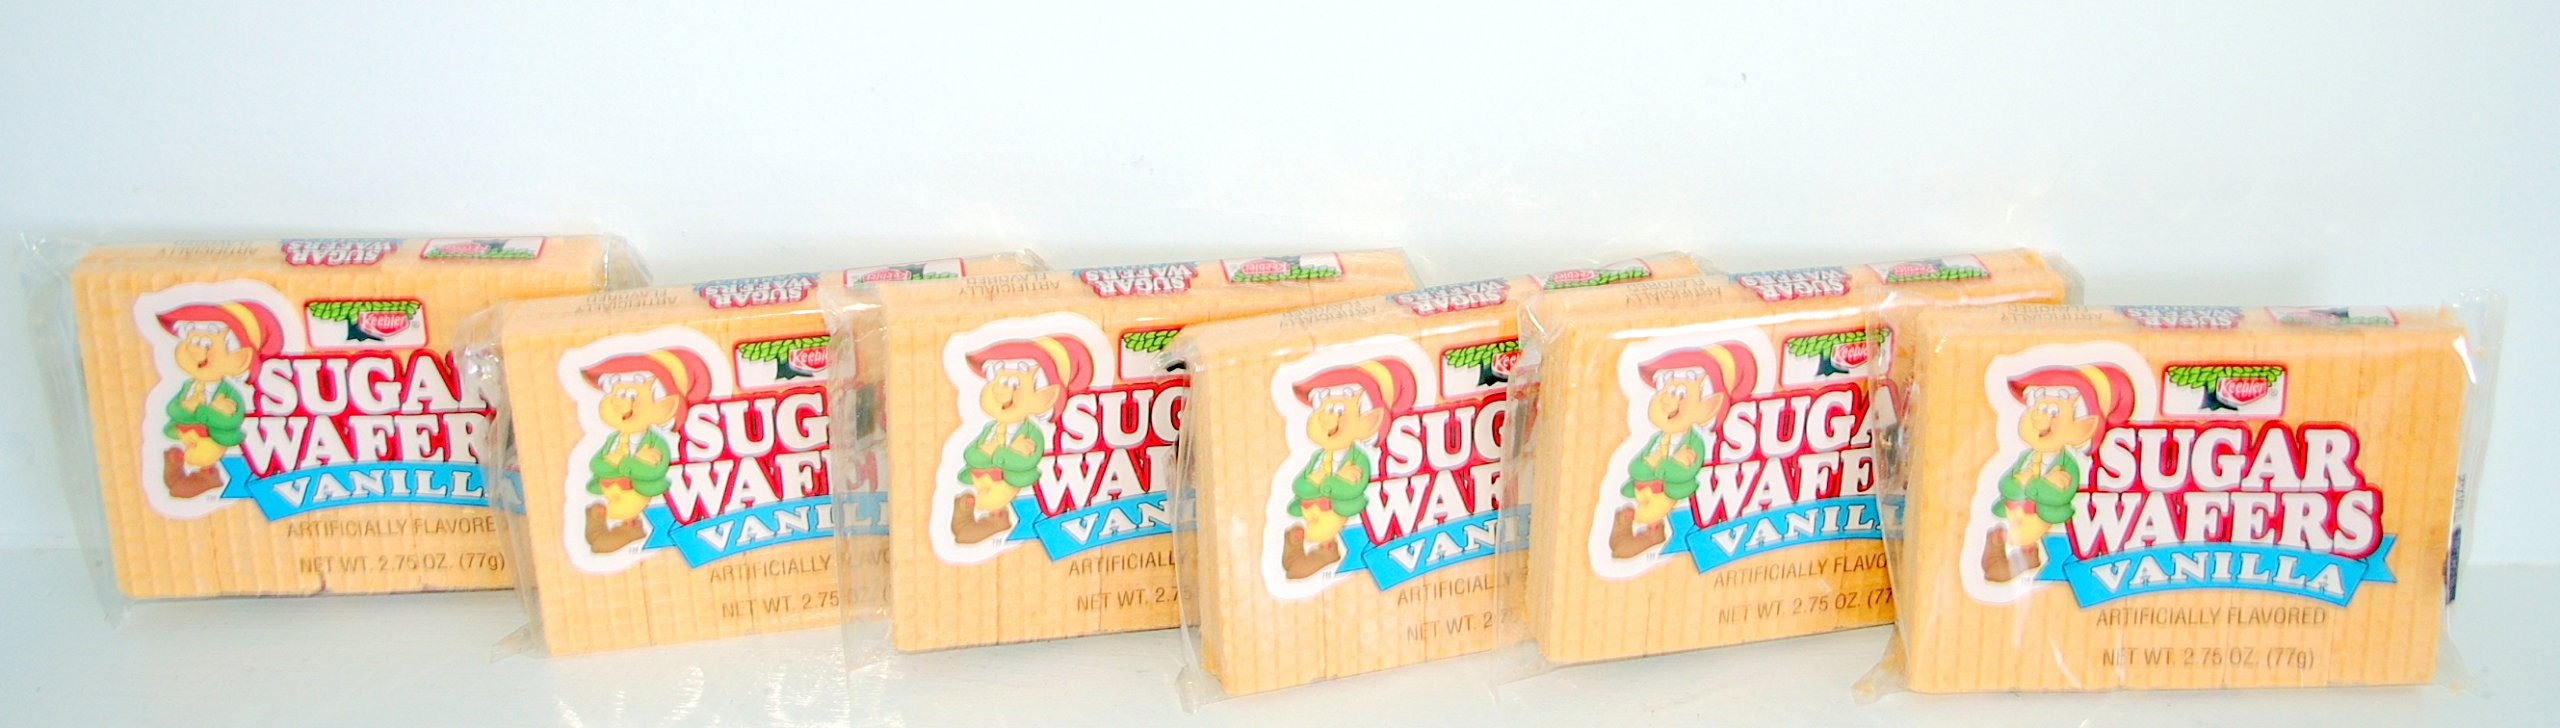 Keebler Sugar Wafers Vanilla - 6 Pack (2.75 Oz.) Small Storage Space Friendly!